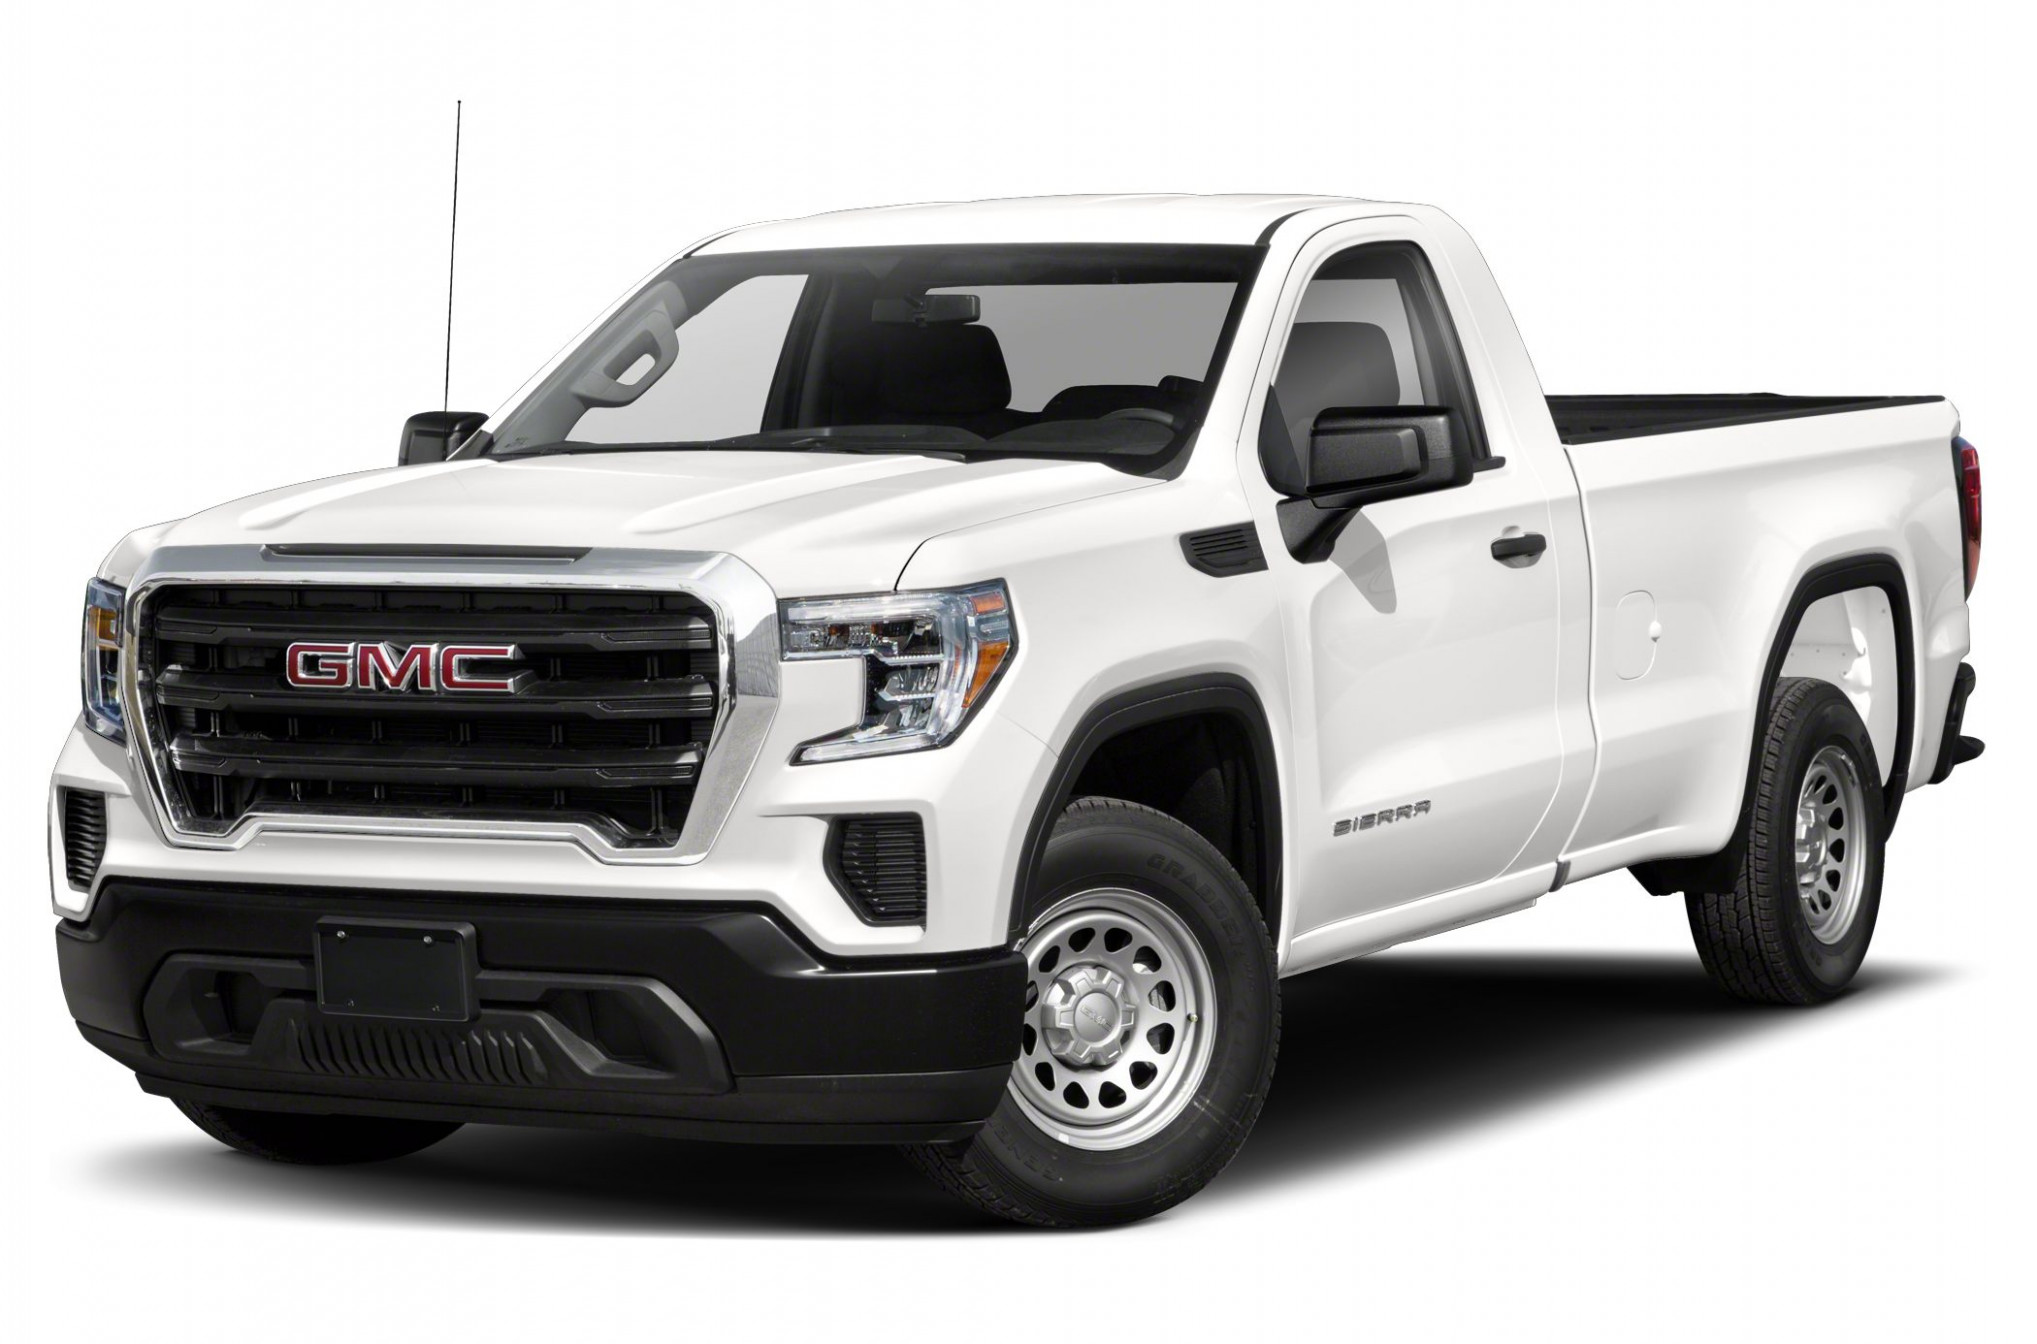 8 GMC Sierra 8 Rebates and Incentives